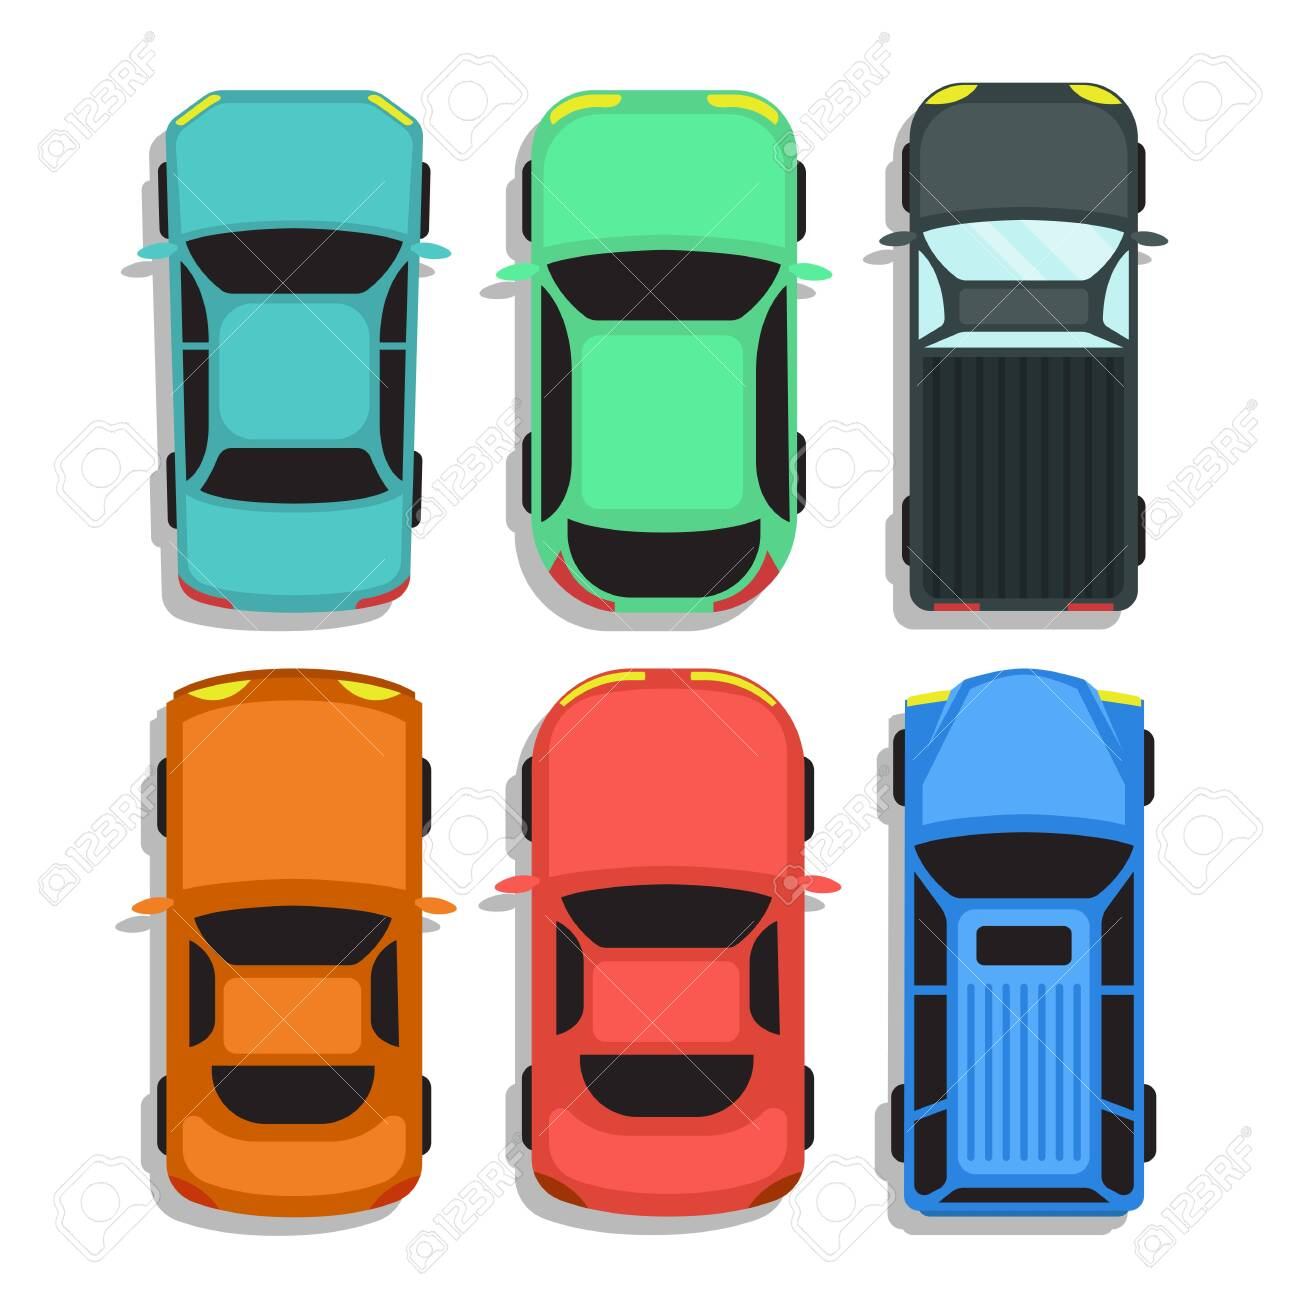 Car top view vector design illustration isolated on white background - 151185467